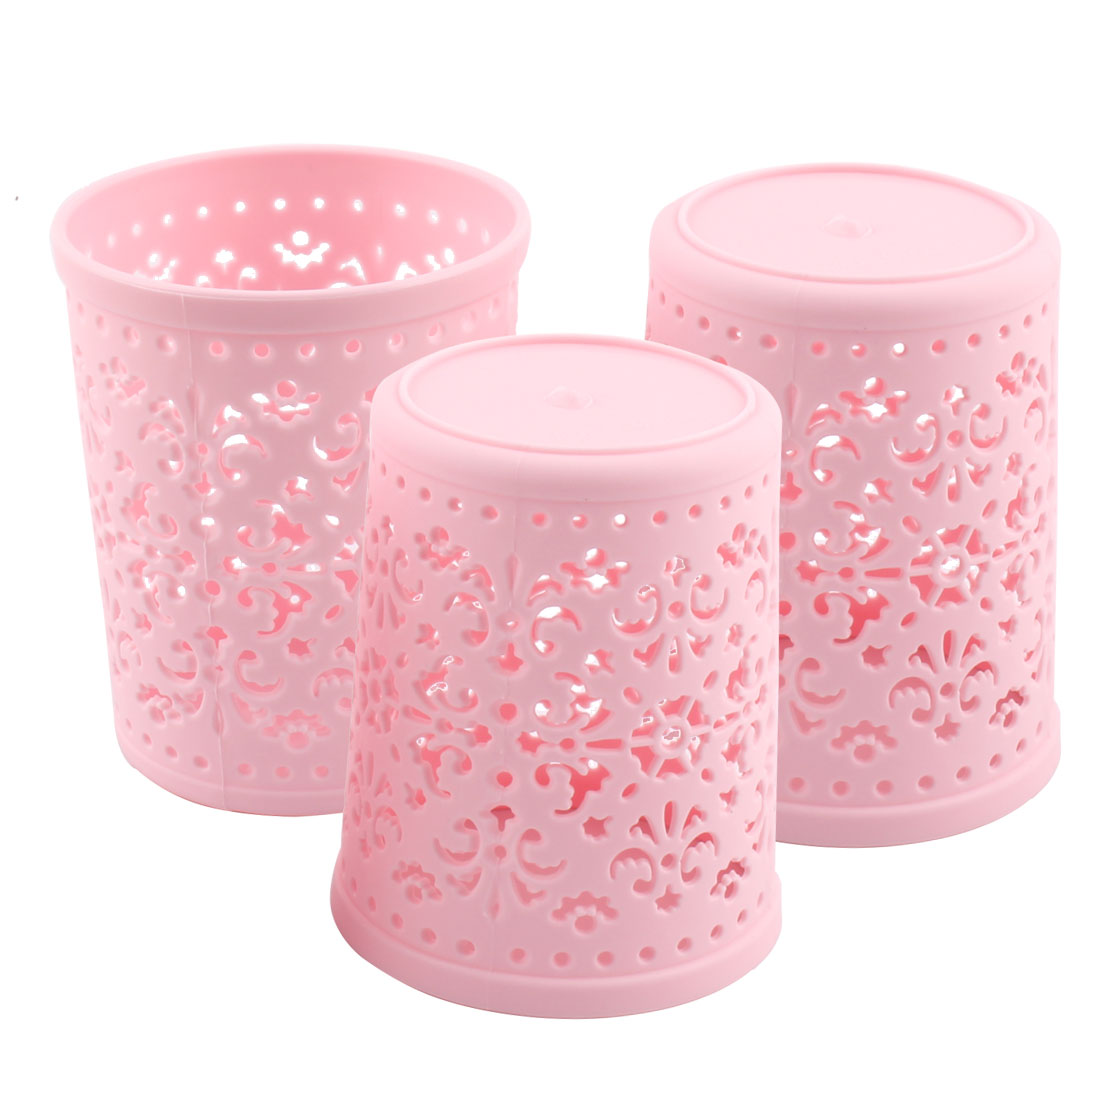 Home Plastic Cylinder Hollow Out Sundries Holder Storage Basket Box Pink 3 Pcs